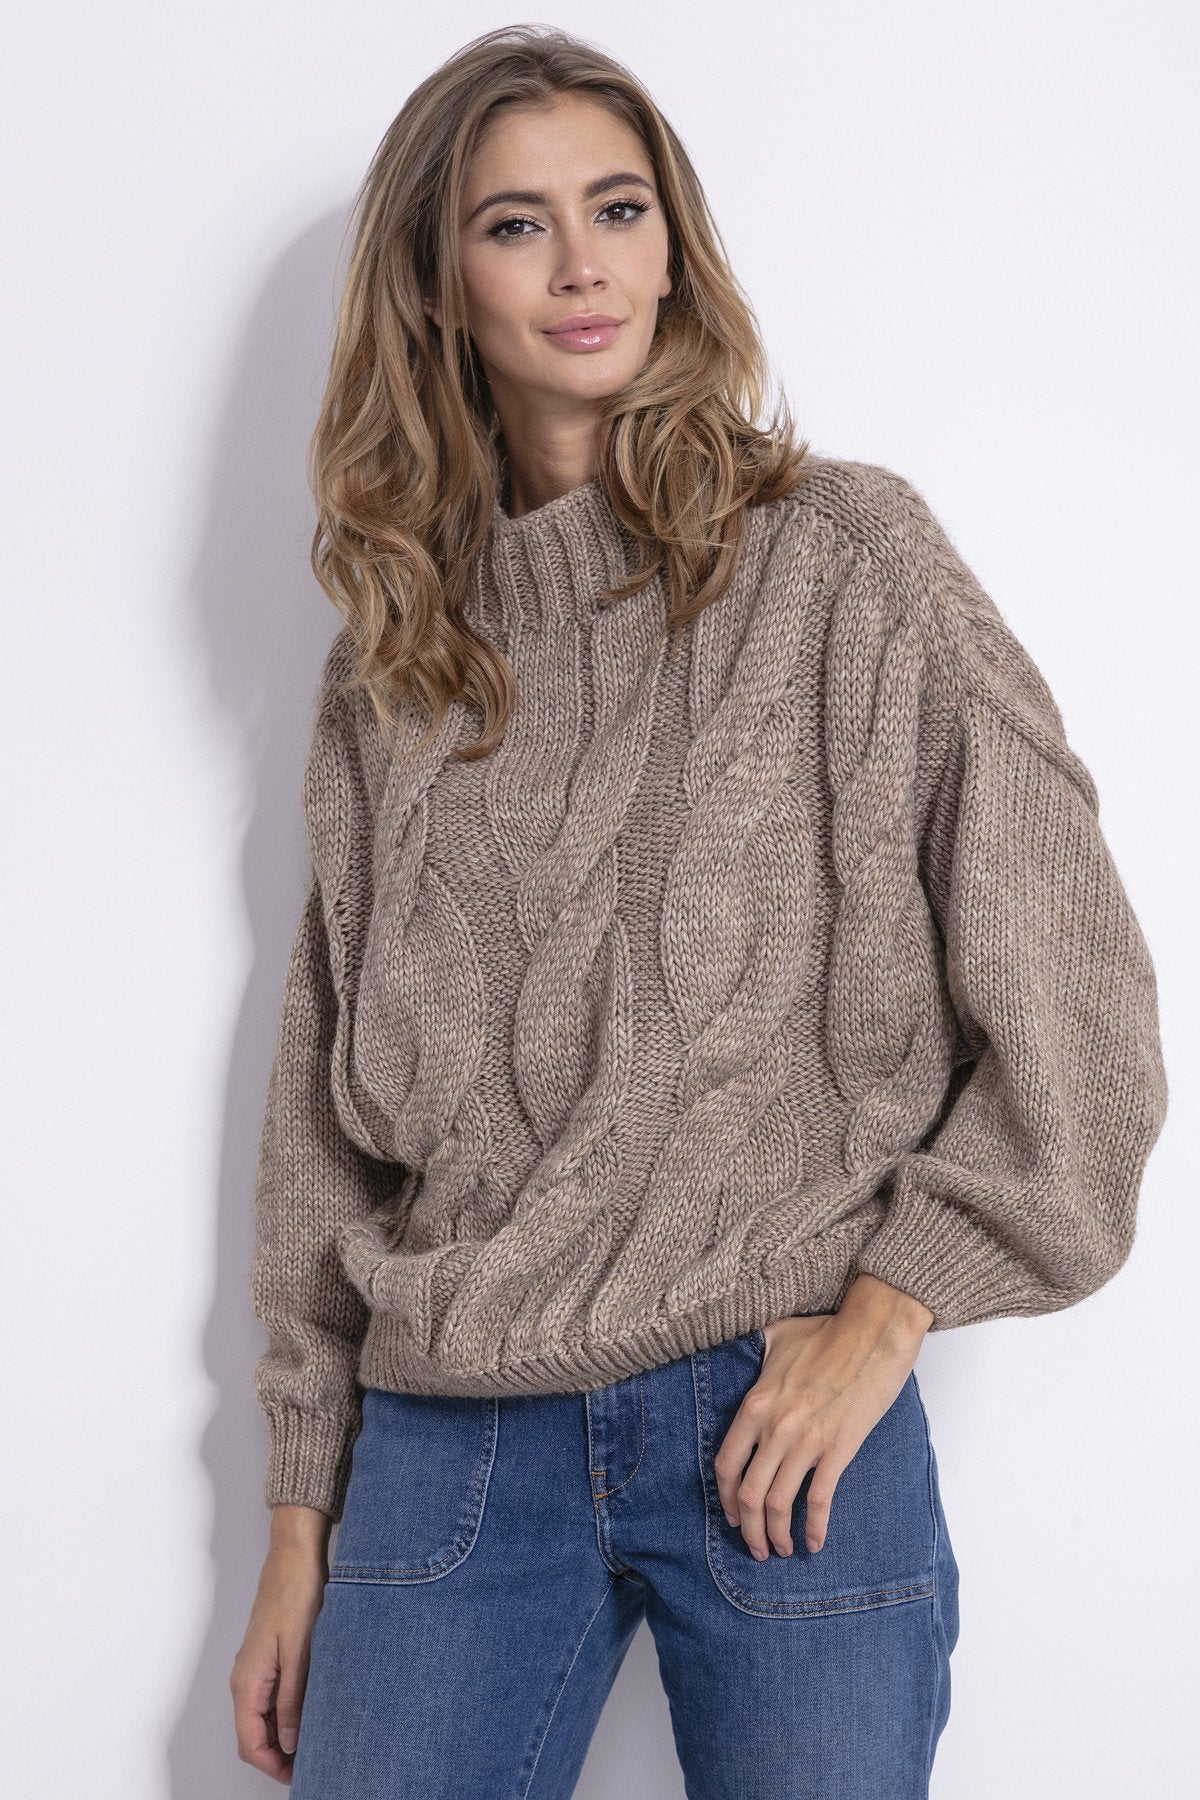 Loose Knit Sweater - LK's Boutique